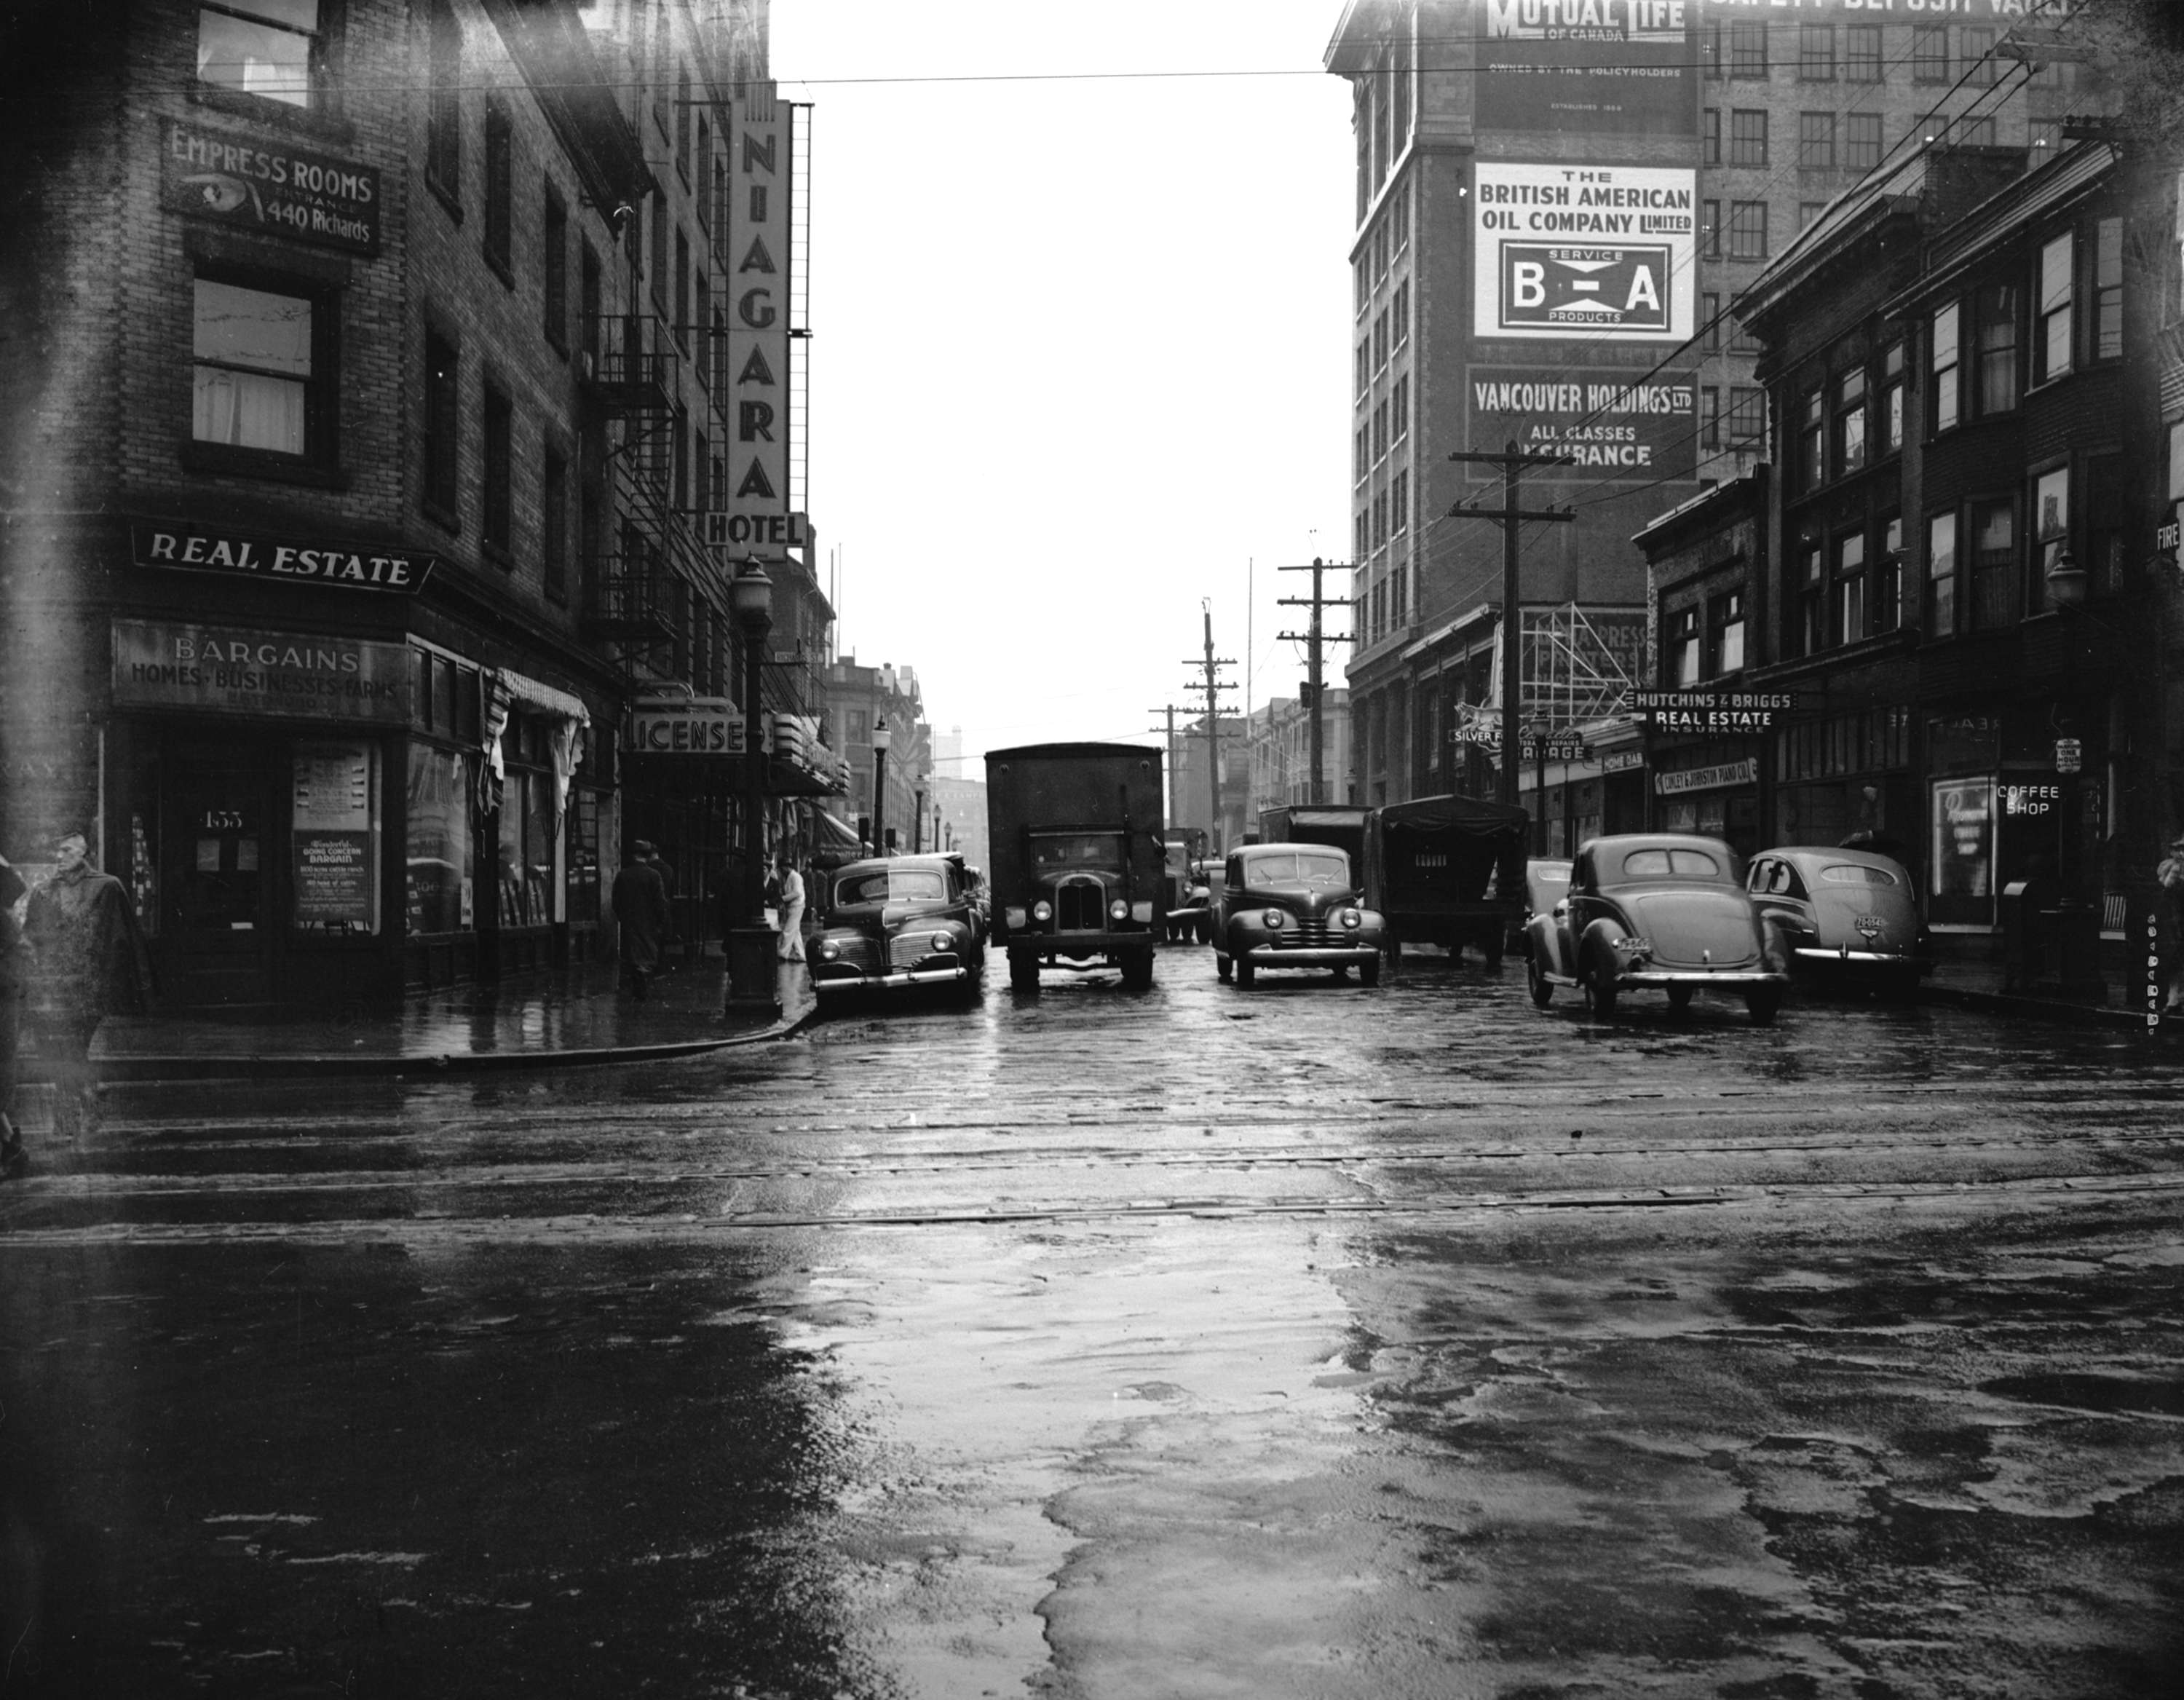 Archival photograph selected by courtney naesgaard for the merging time exhibit street traffic at pender